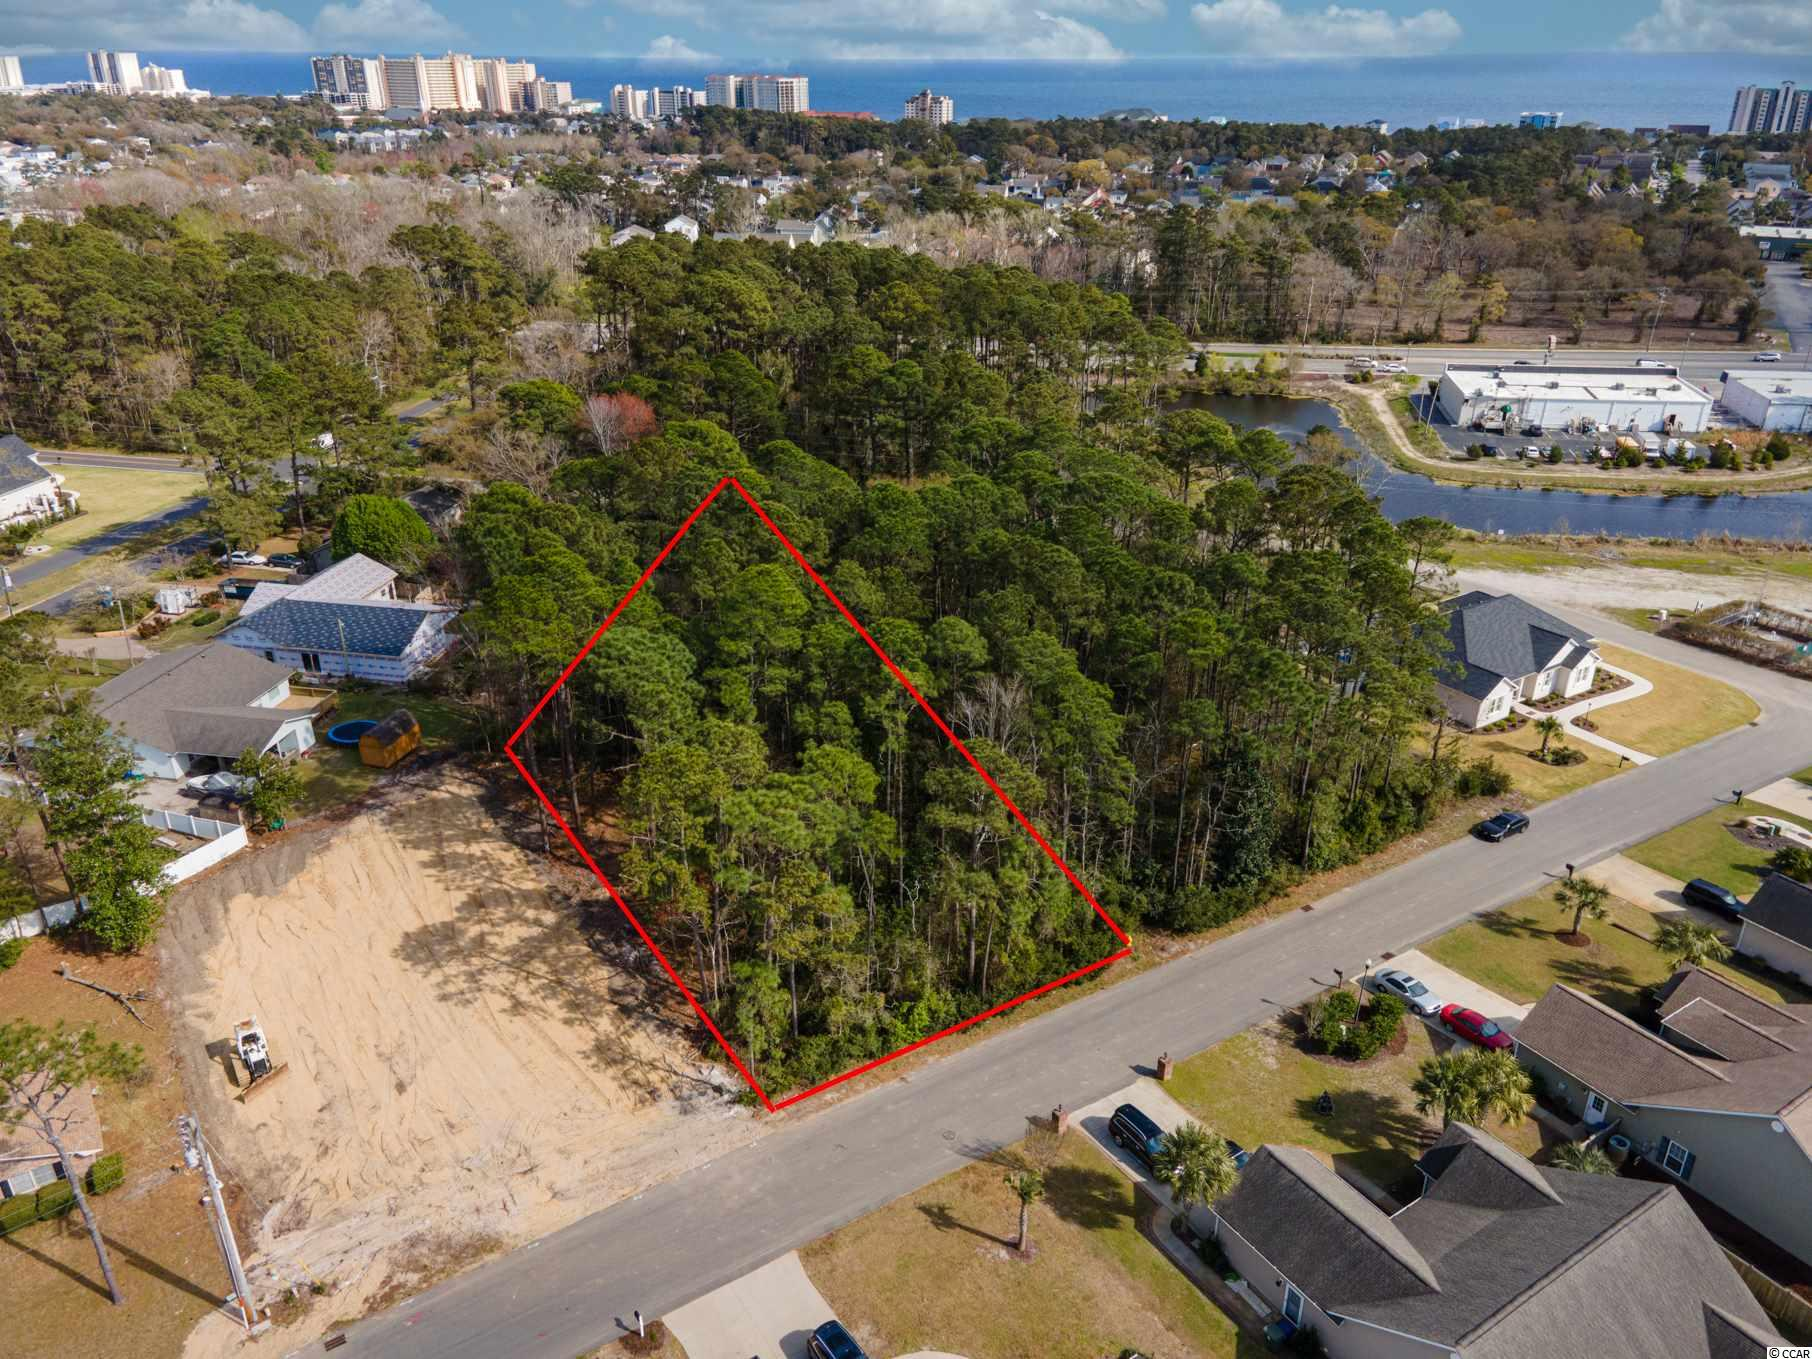 Wonderful OPPORTUNITY to own one of the LAST and LARGEST lots in the established community of Belle Park! This .38 acre site is the perfect place for your beach dream home! Bring your own custom builder and enjoy No time frame to build and NO HOA!! West of Hwy 17, but still GOLF CART DISTANCE to the BEACH and the Intracoastal Waterway! Central to everything that North Myrtle has to offer. Close to all the shopping, dining, festivals, hospitals, grocery, great schools, and multiple championship golf courses! Don't delay!